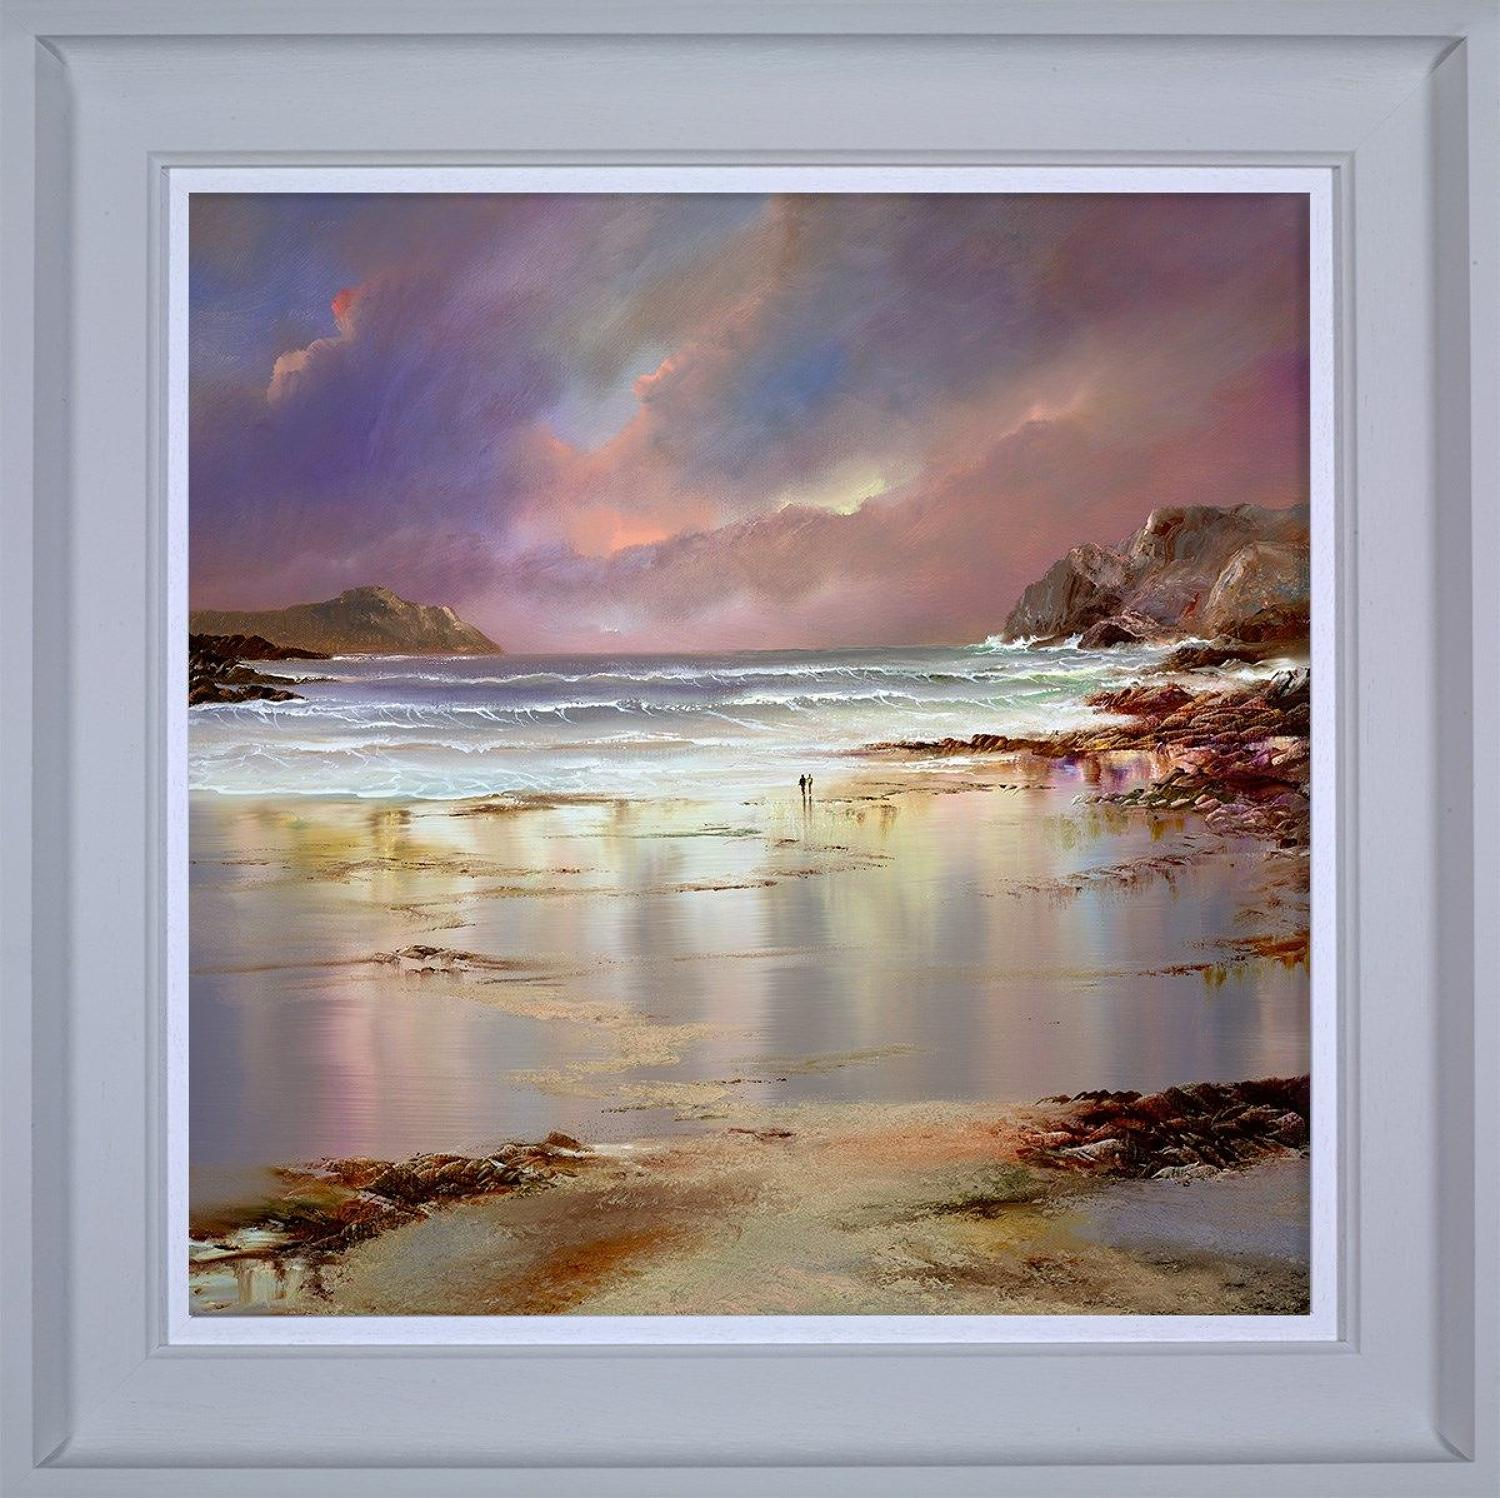 Infinite Skies Framed Art Print by Philip Gray